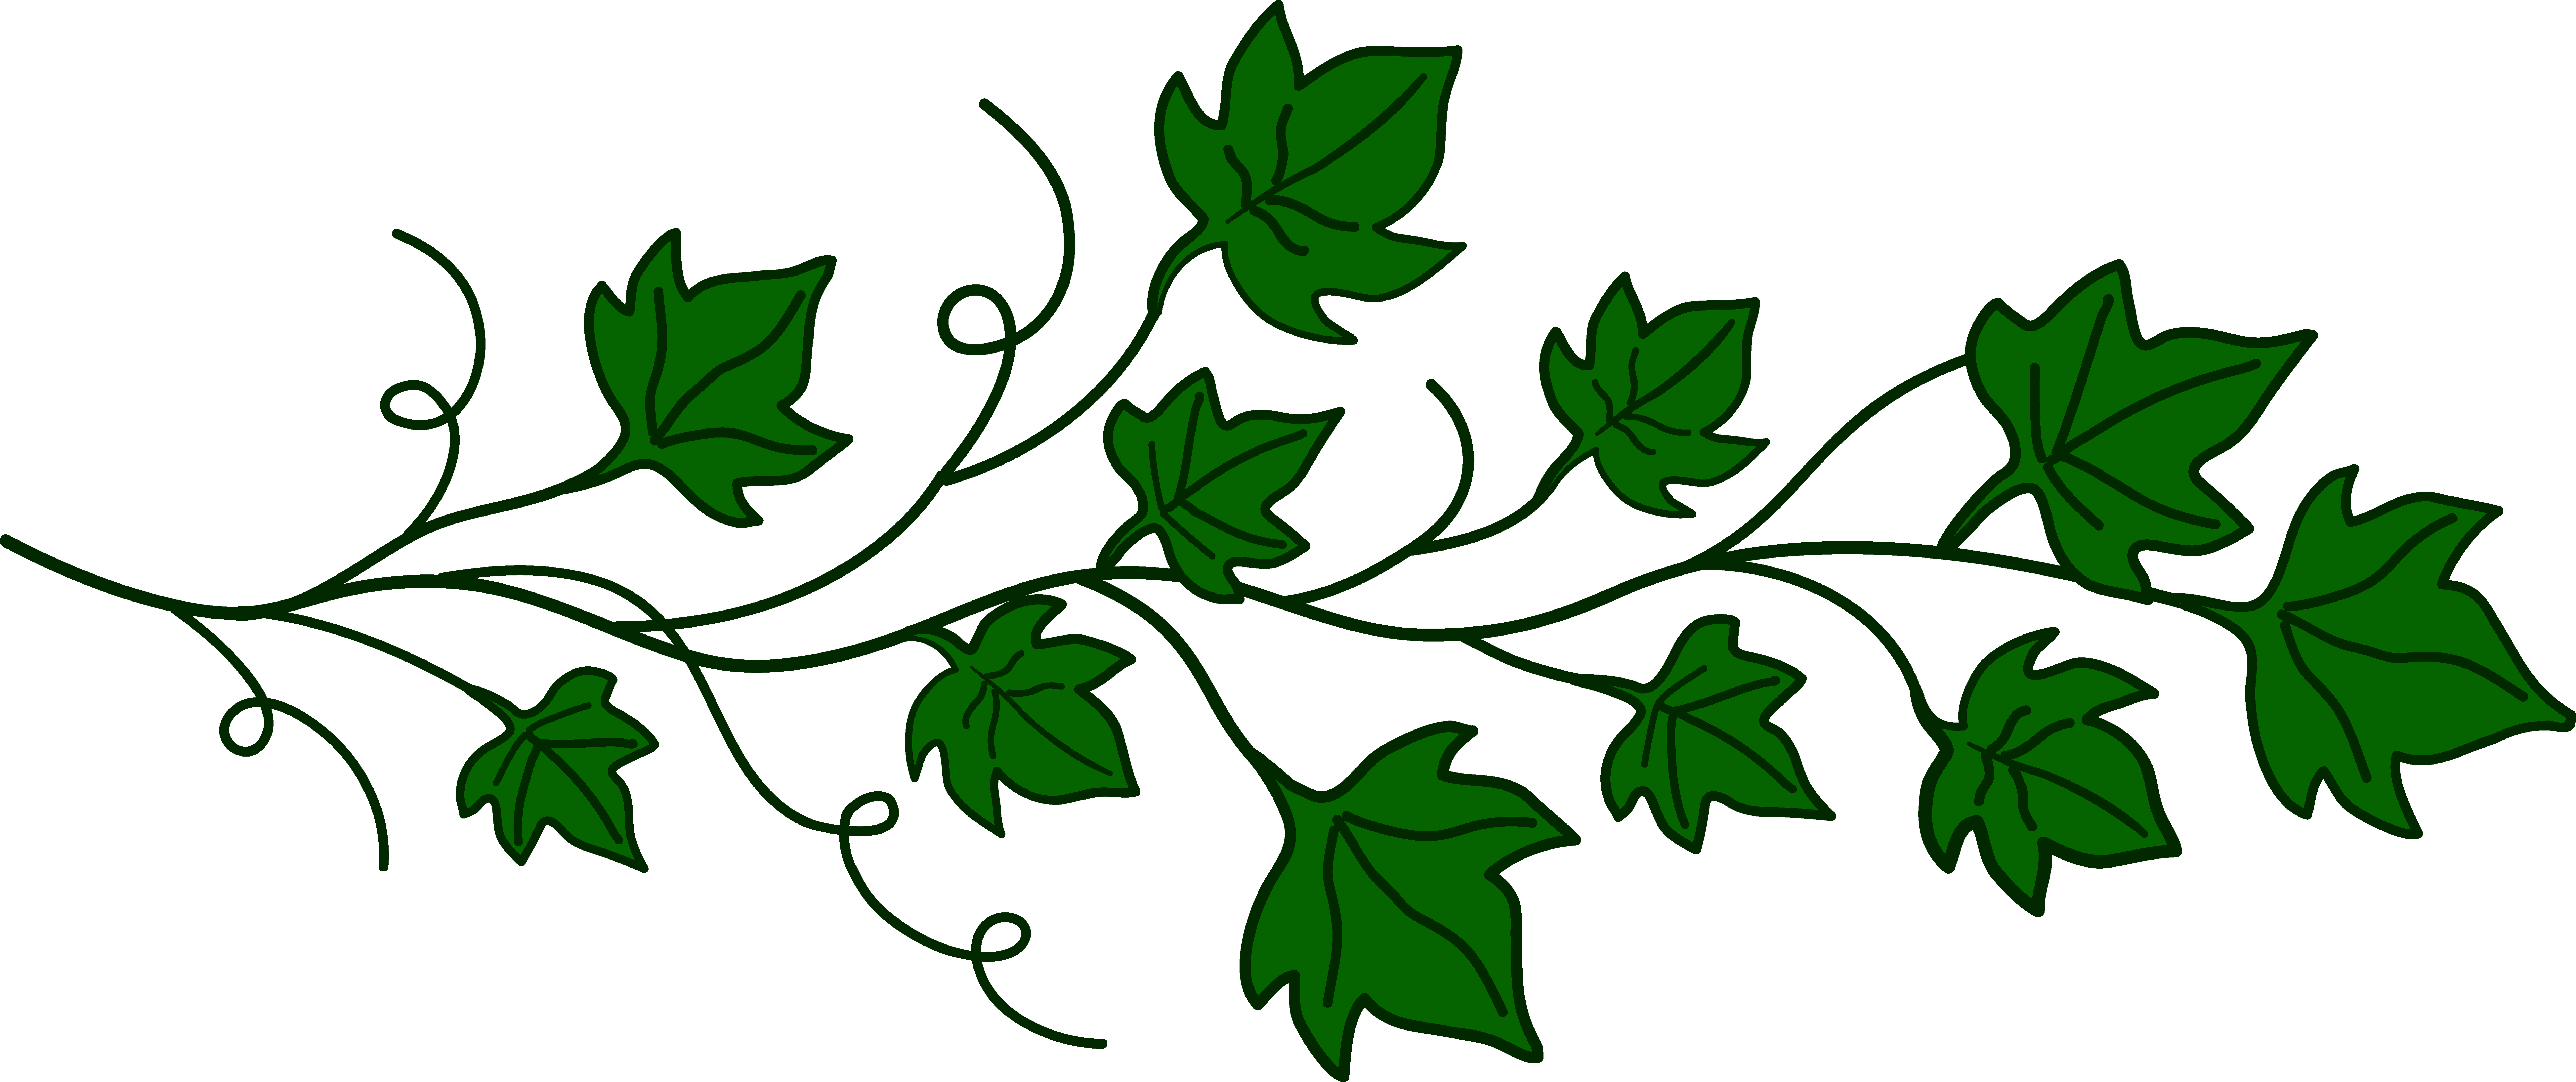 High Resolution Ivy Flowers Png image #46857